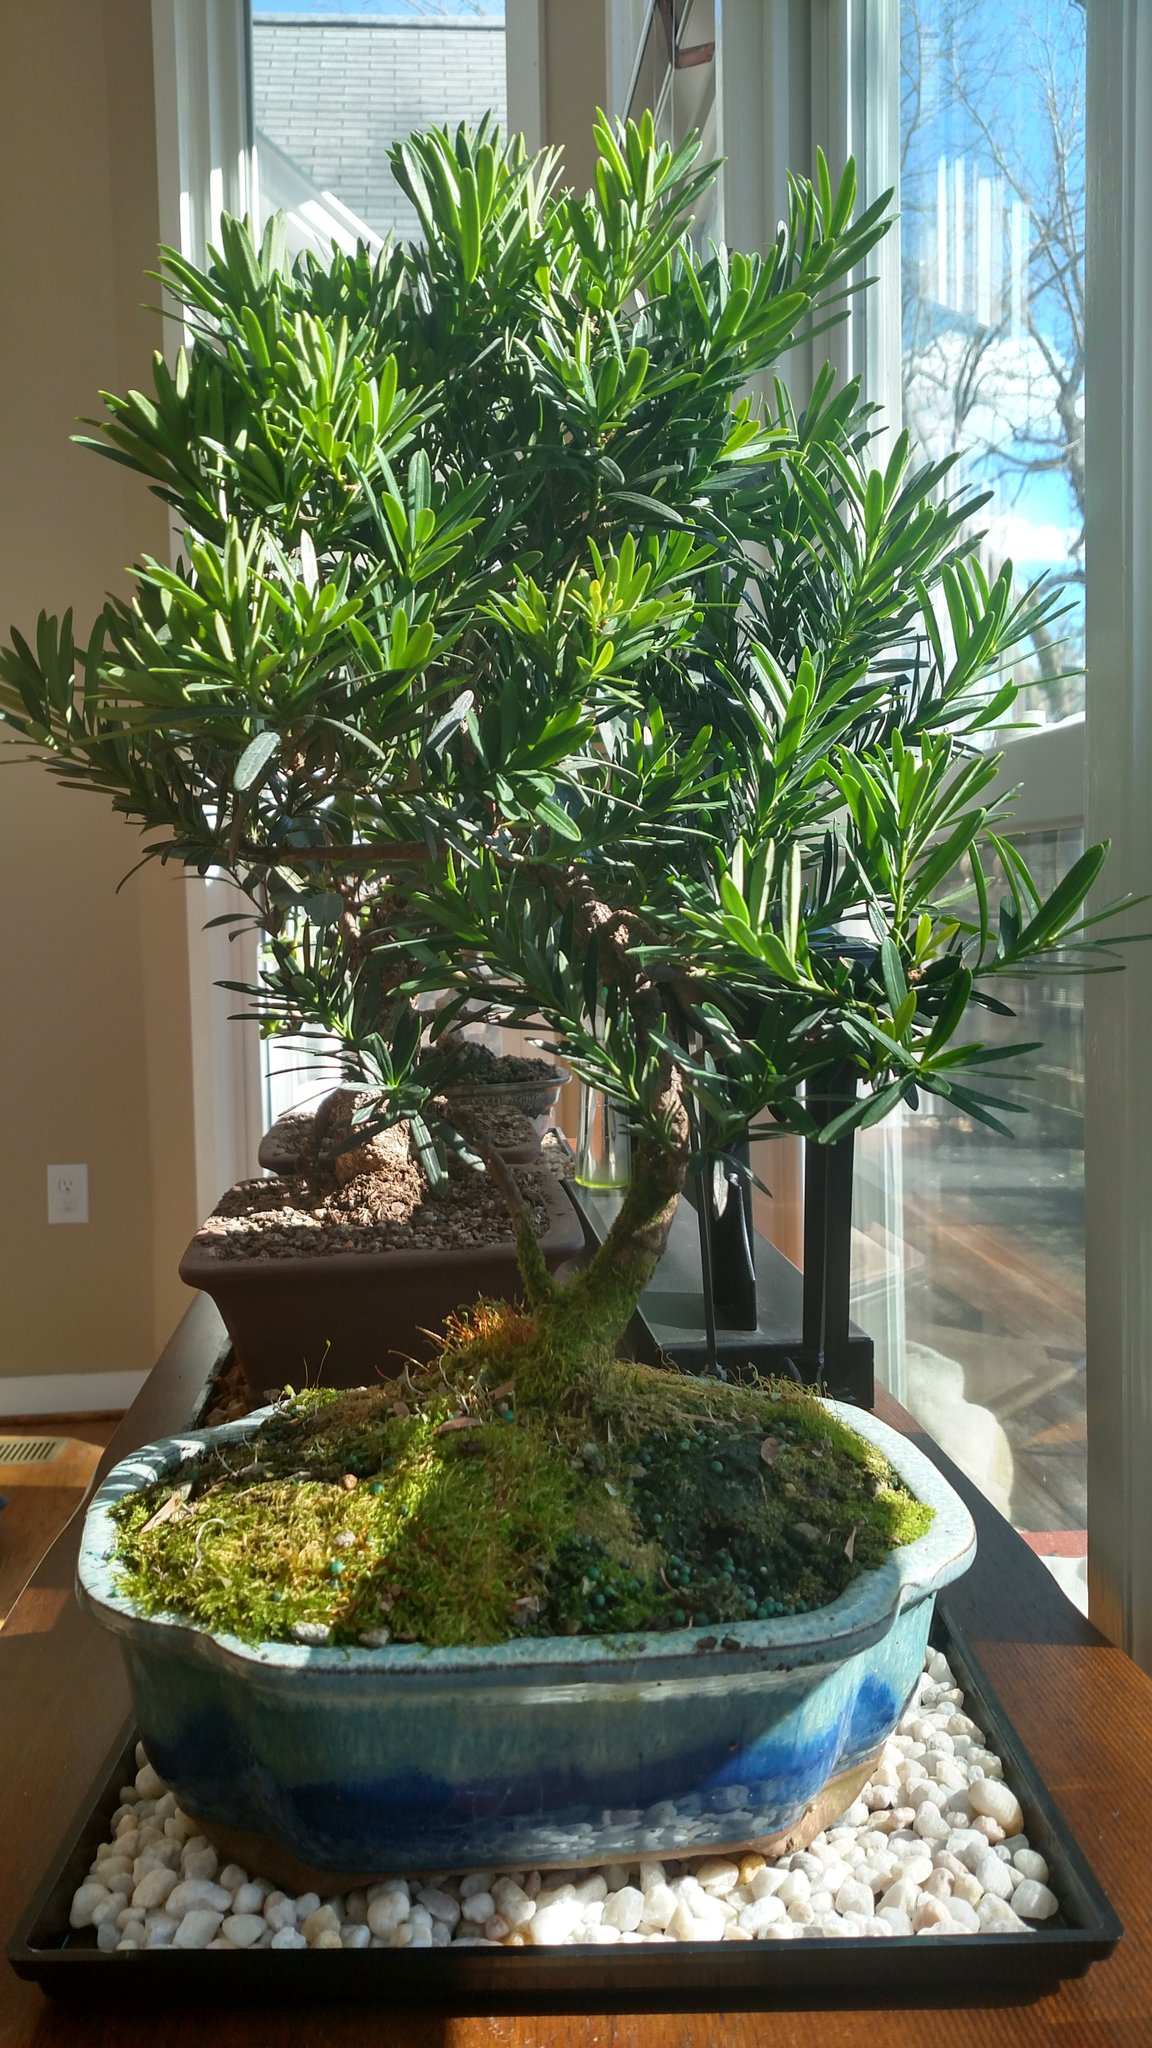 Lisa Shearin The Entity Game On Twitter A Valentine S Day Gift From Derek A 10 Yr Old Podocarpus Bonsai Arrived In Perfect Condition As Did All My Trees From Brusselsbonsai Https T Co Lhntdfb40q